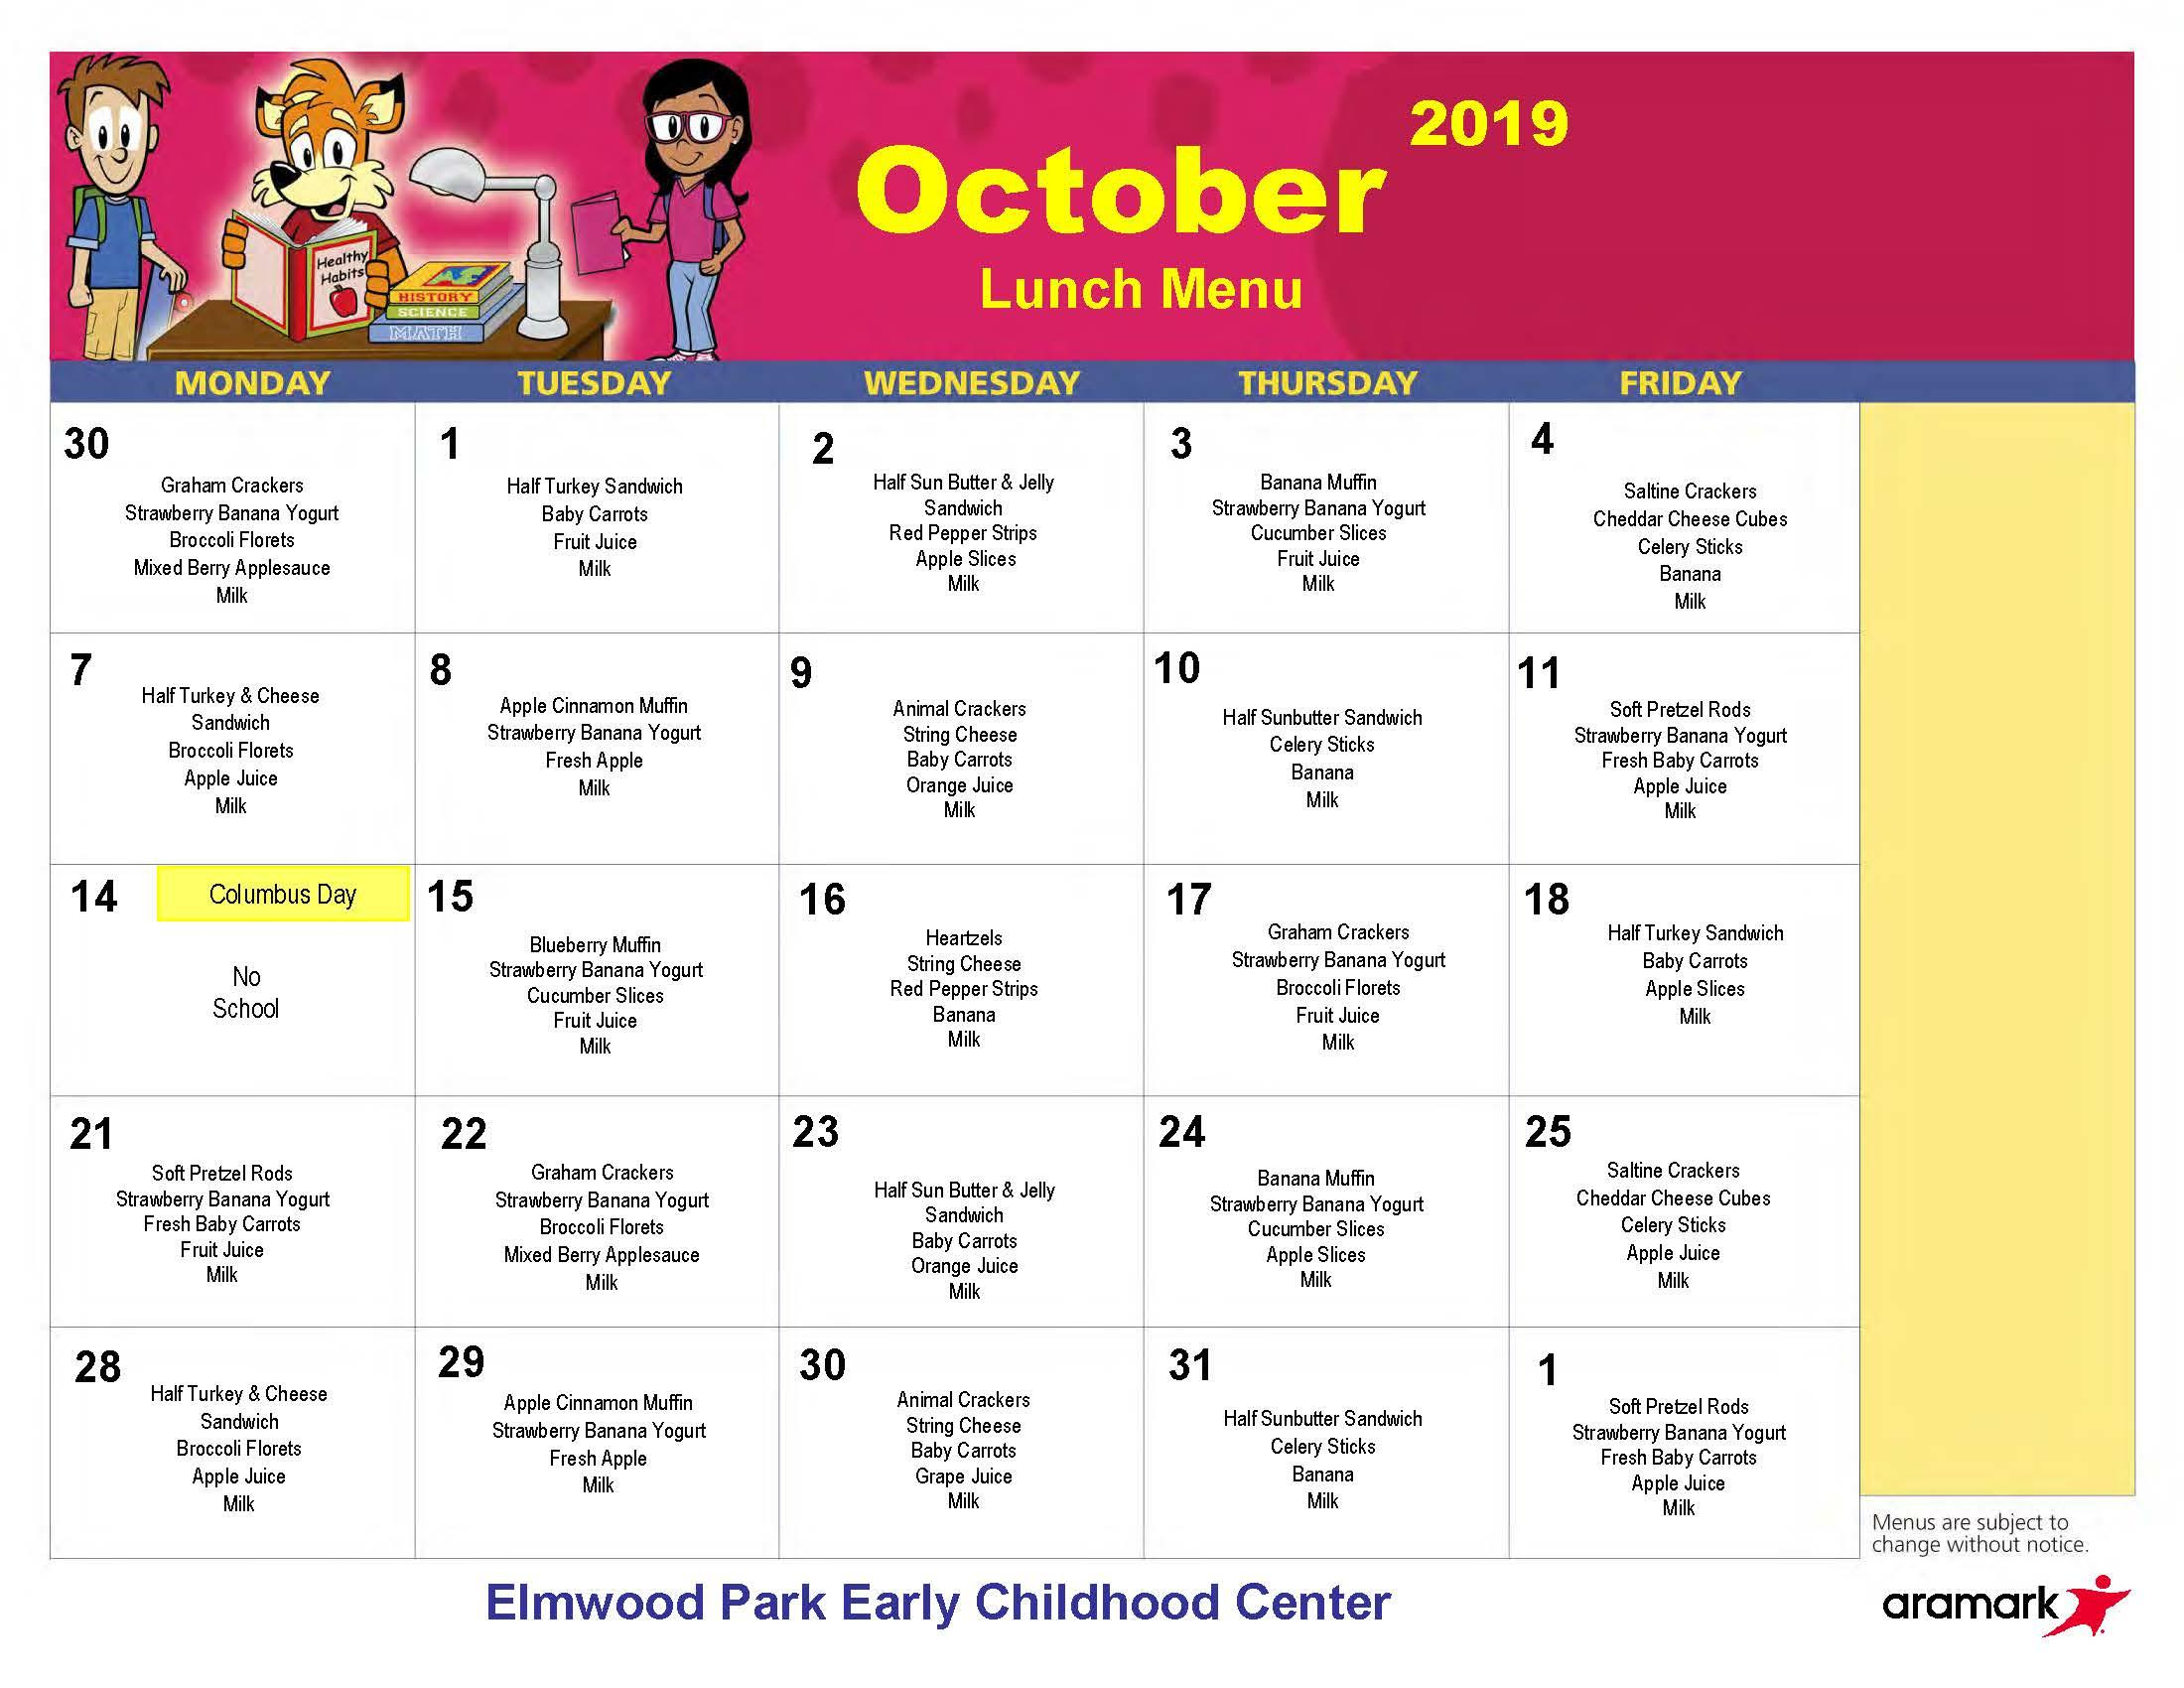 ECC Lunch Menu, October 2019